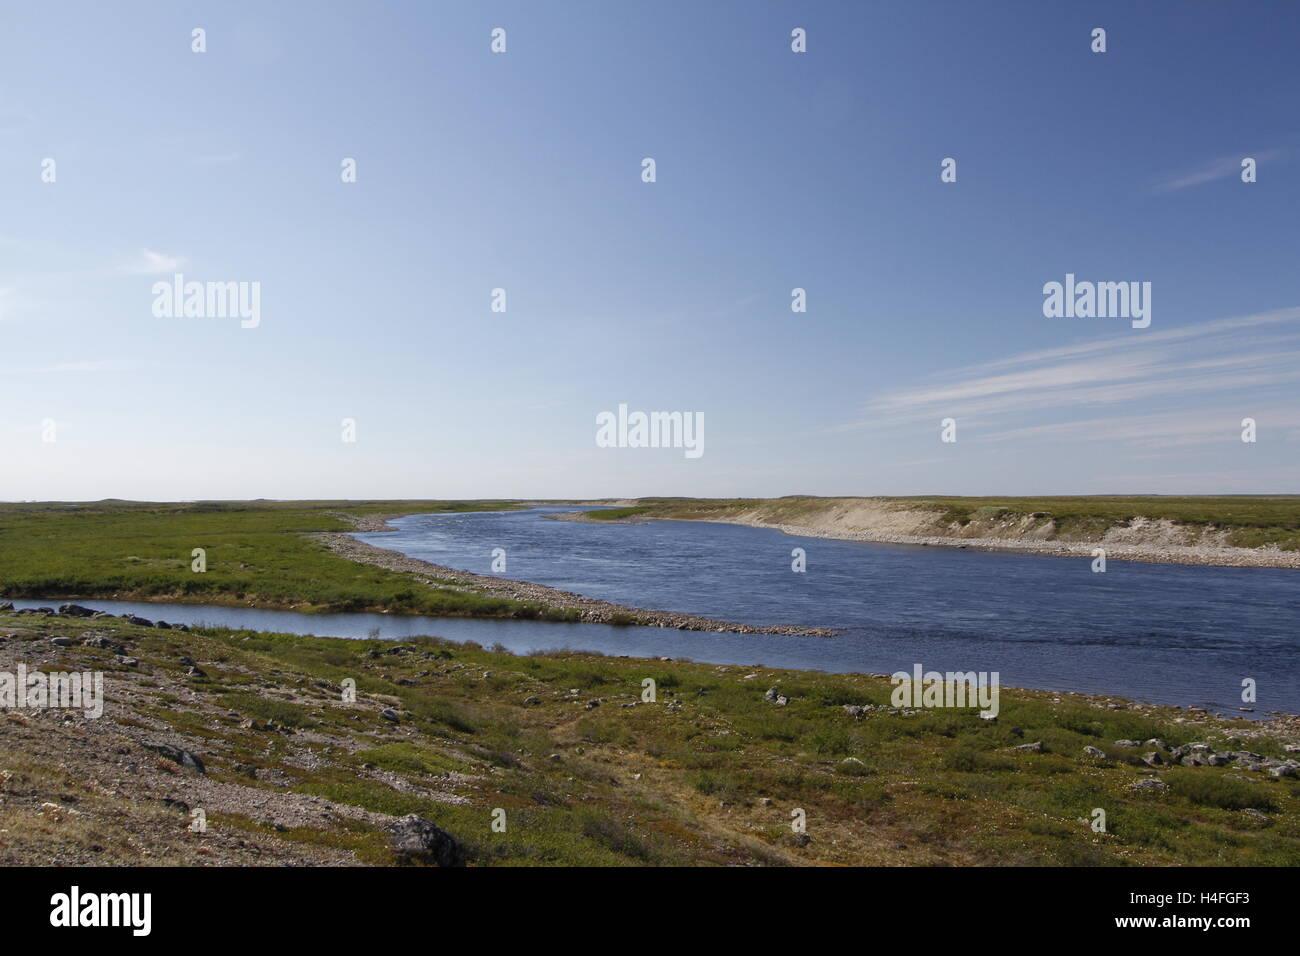 Looking across Maguse River north of Arviat, Nunavut - Stock Image